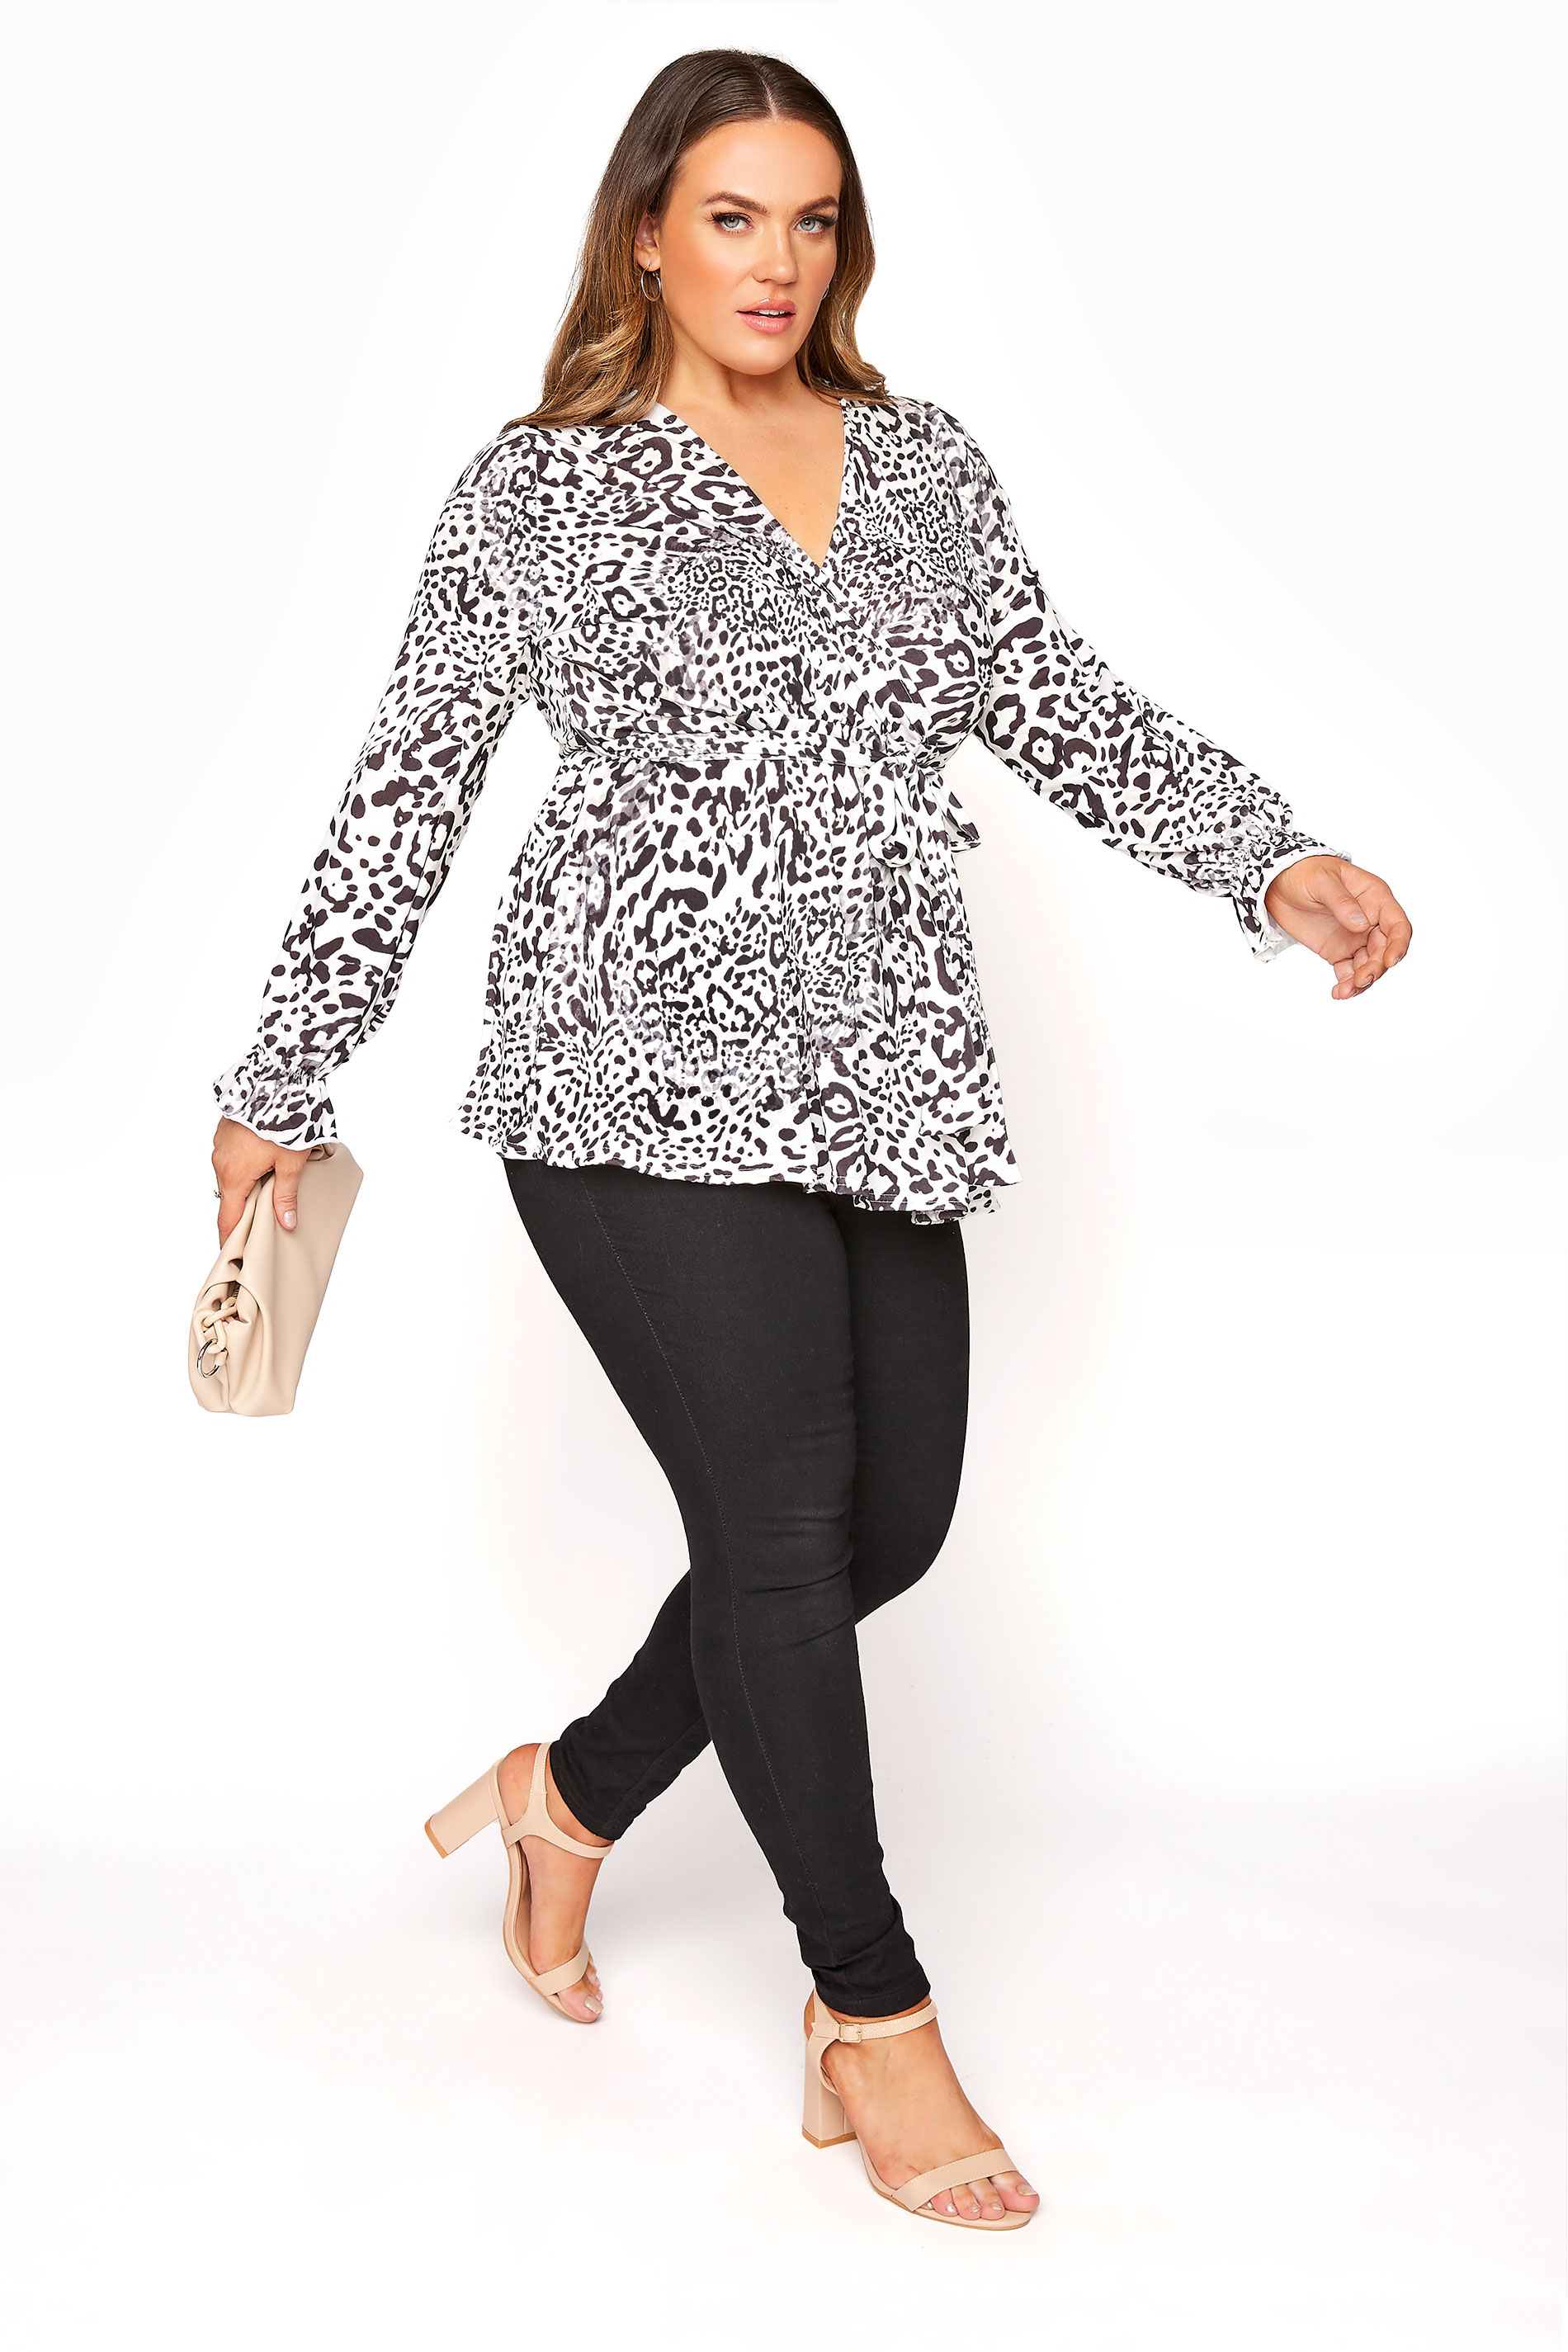 YOURS LONDON White Leopard Print Wrap Top